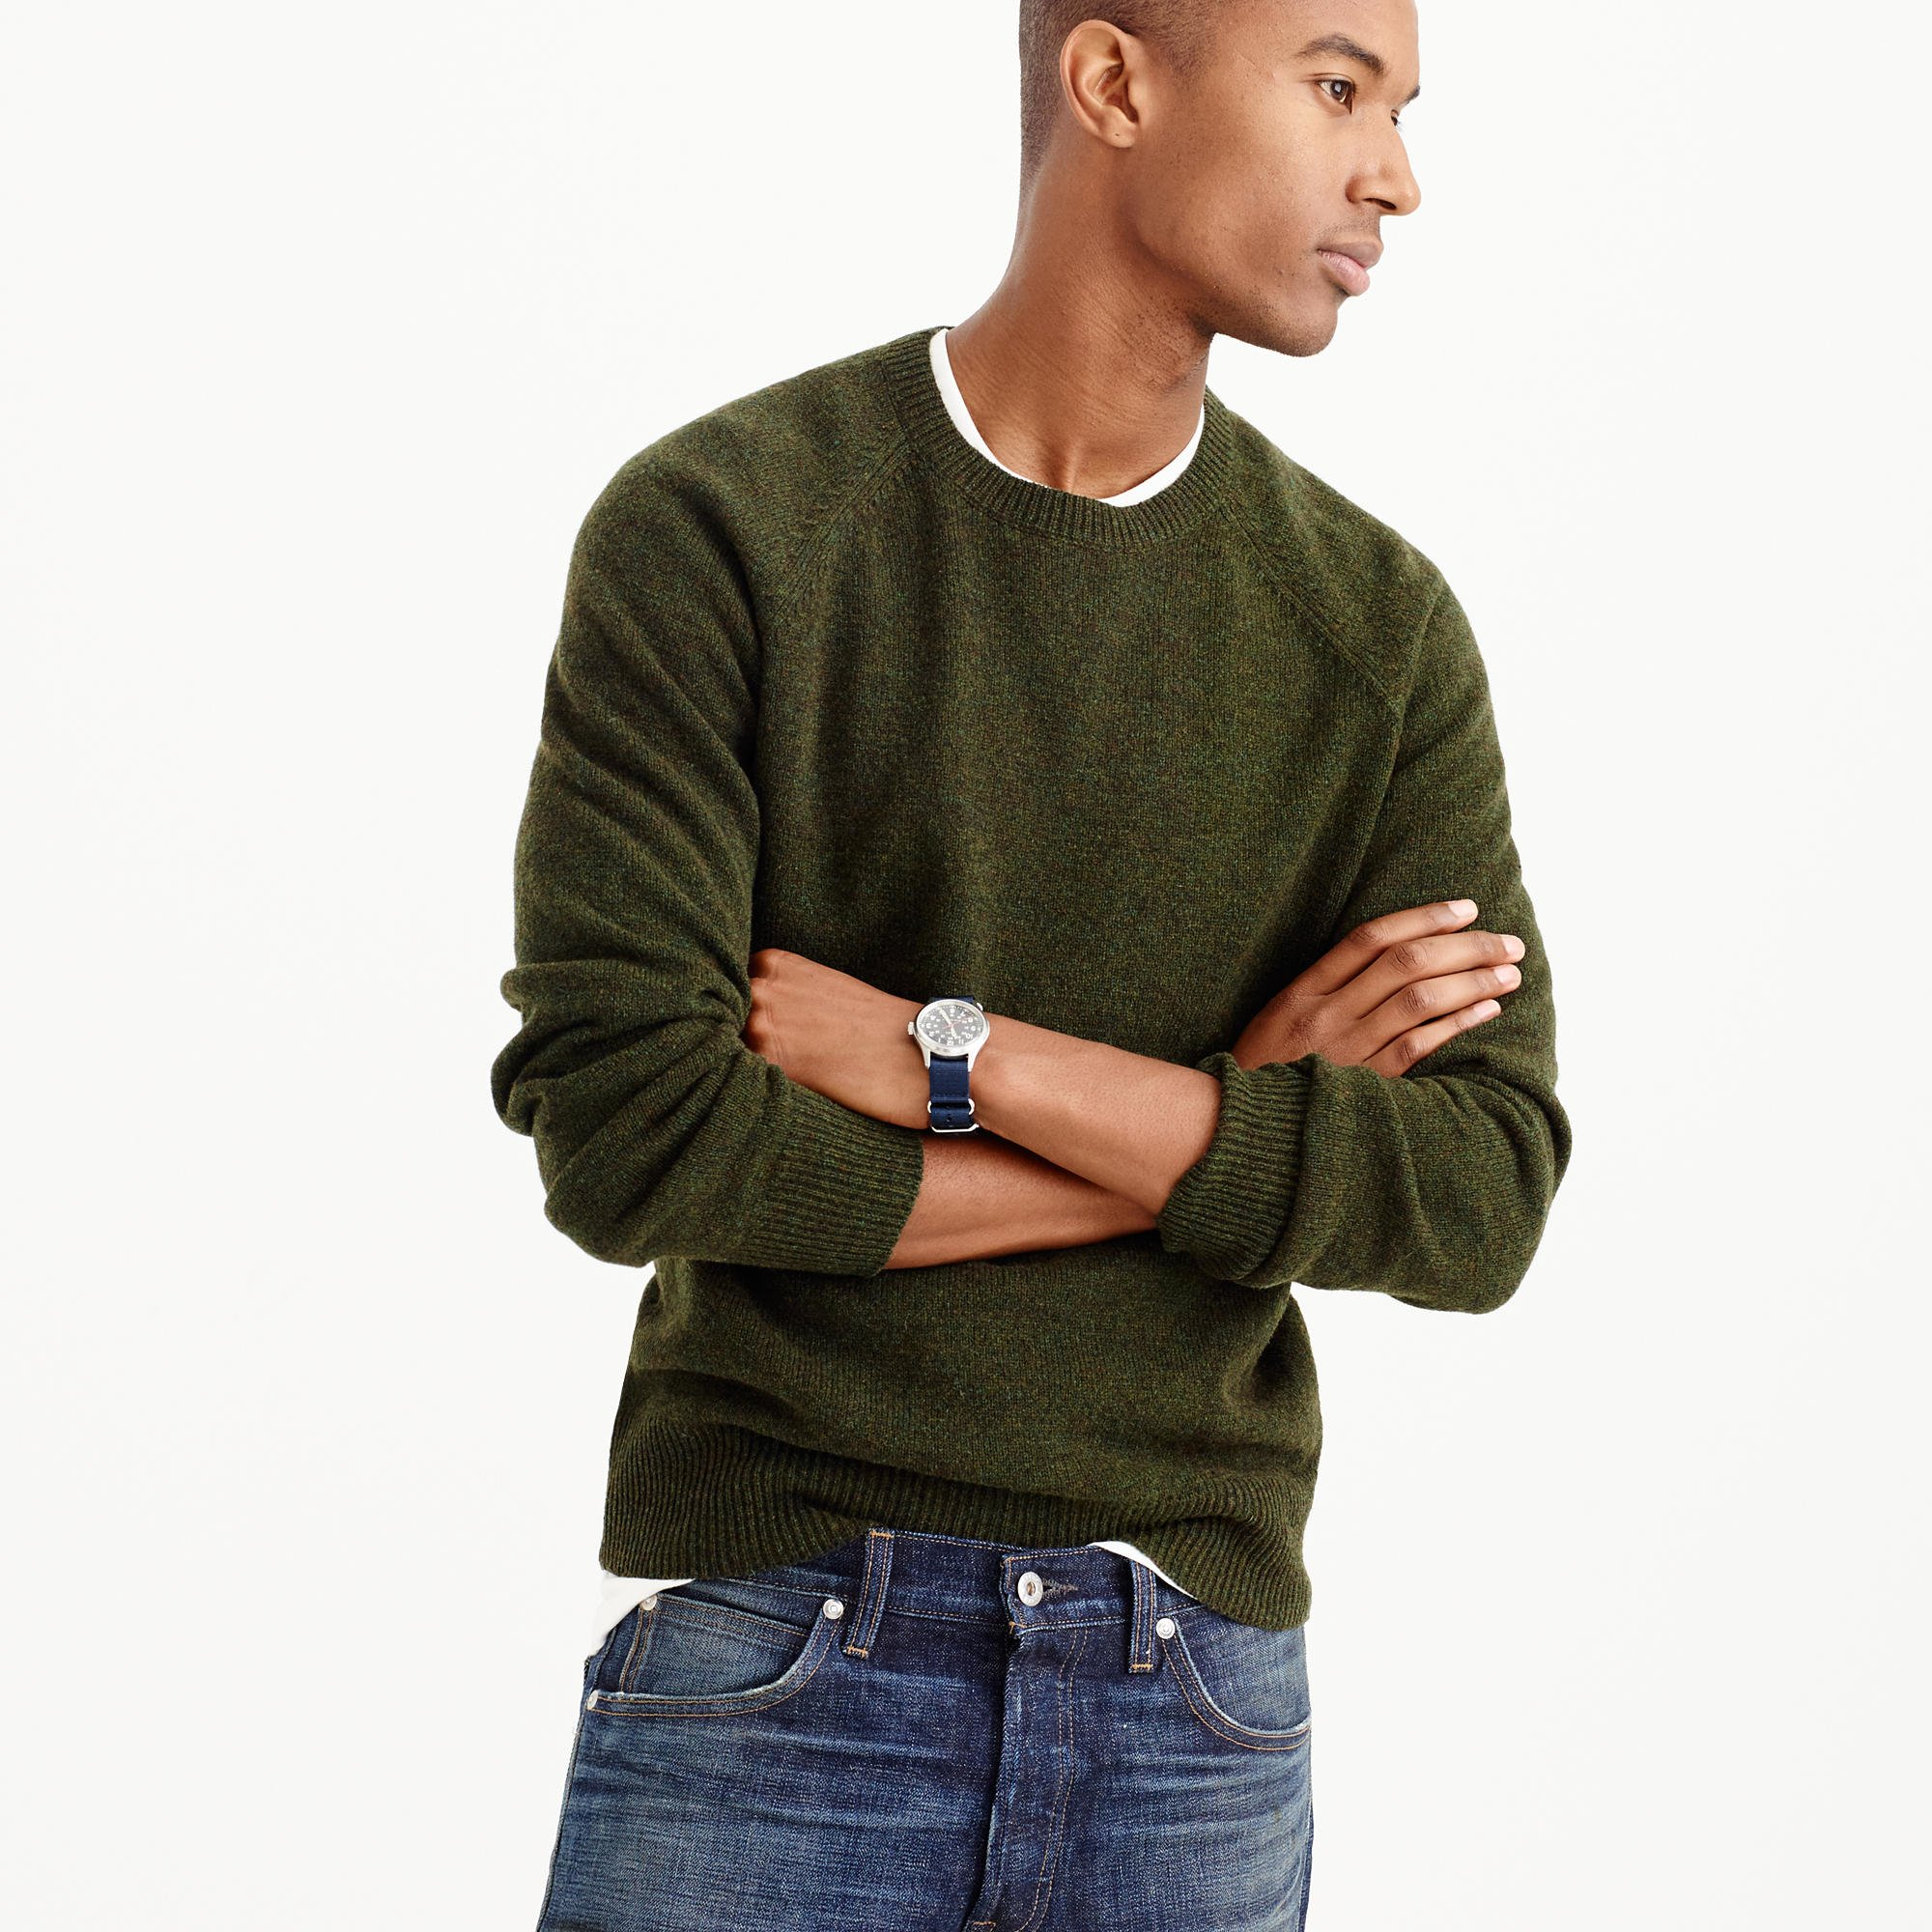 6bbfbb6a7 Lyst - J.Crew Tall Lambswool Sweater in Green for Men